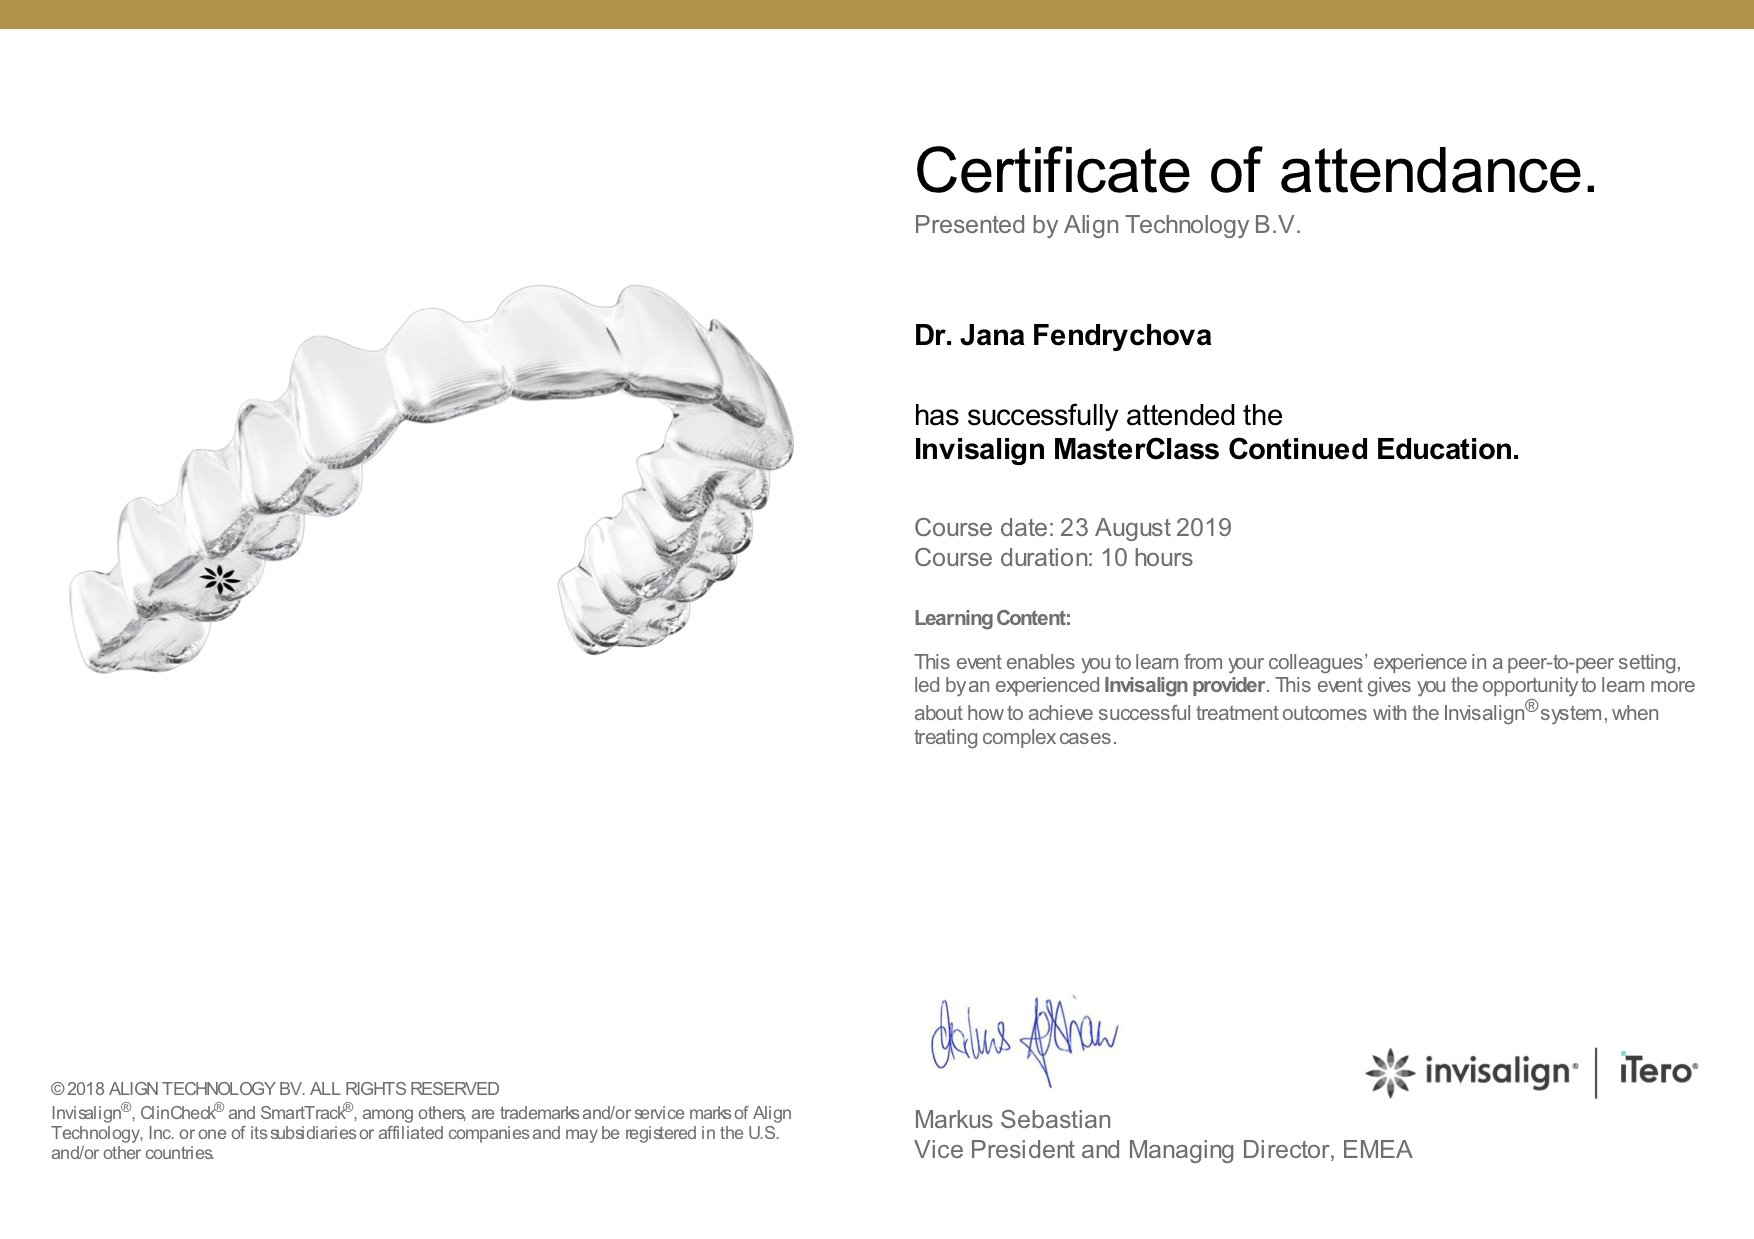 Invisalign MasterClass Continued Education